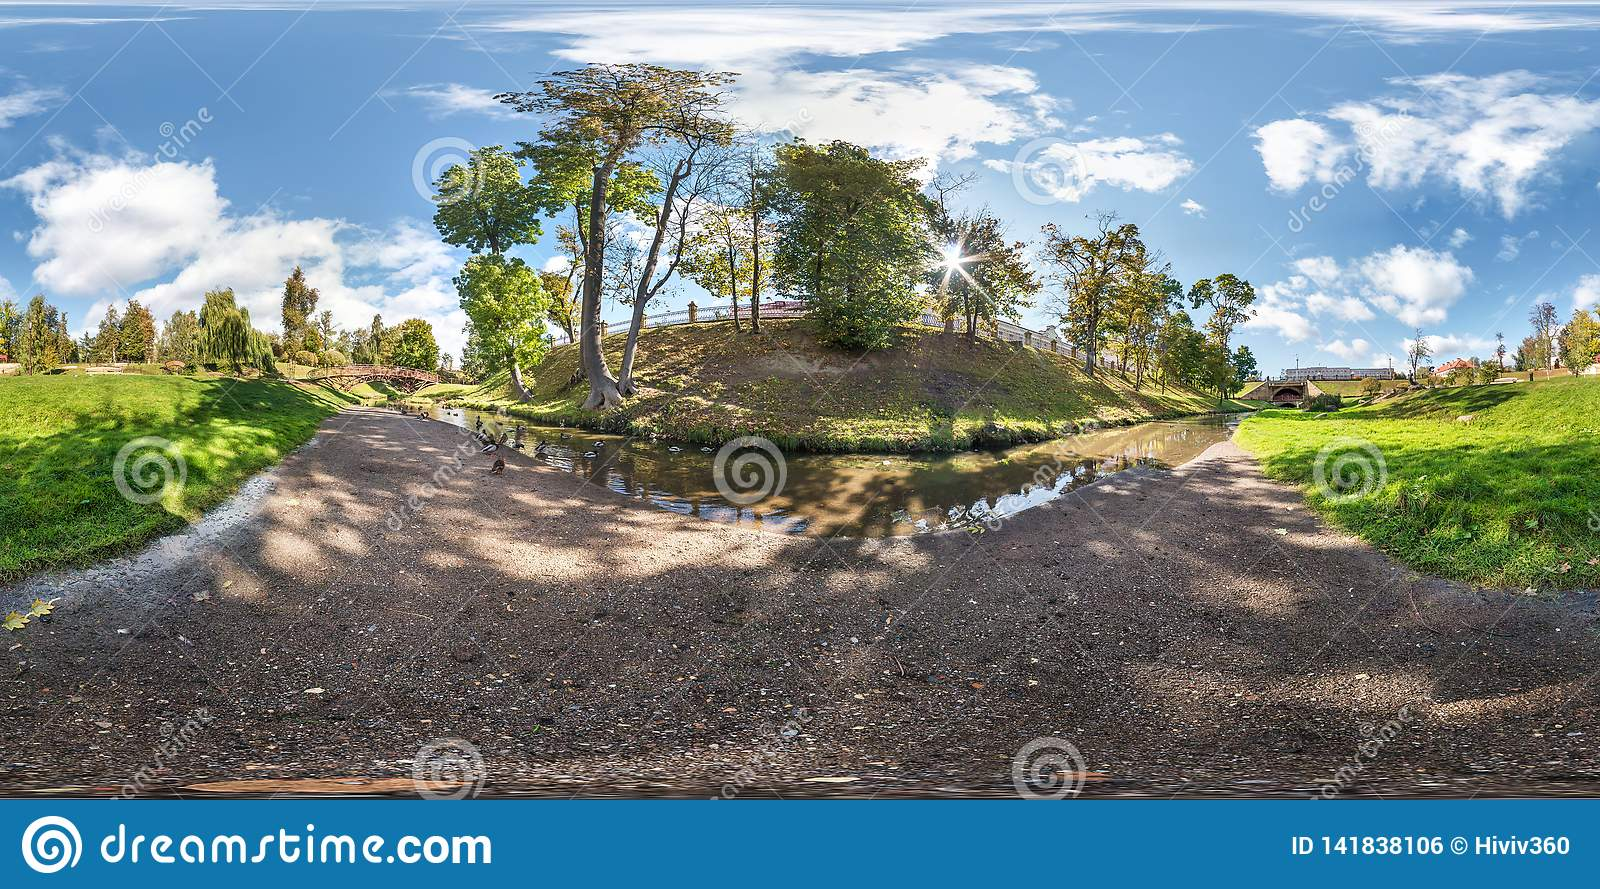 Full seamless spherical panorama 360 by 180 degrees angle view on the shore of small river with ducks in city park in summer day